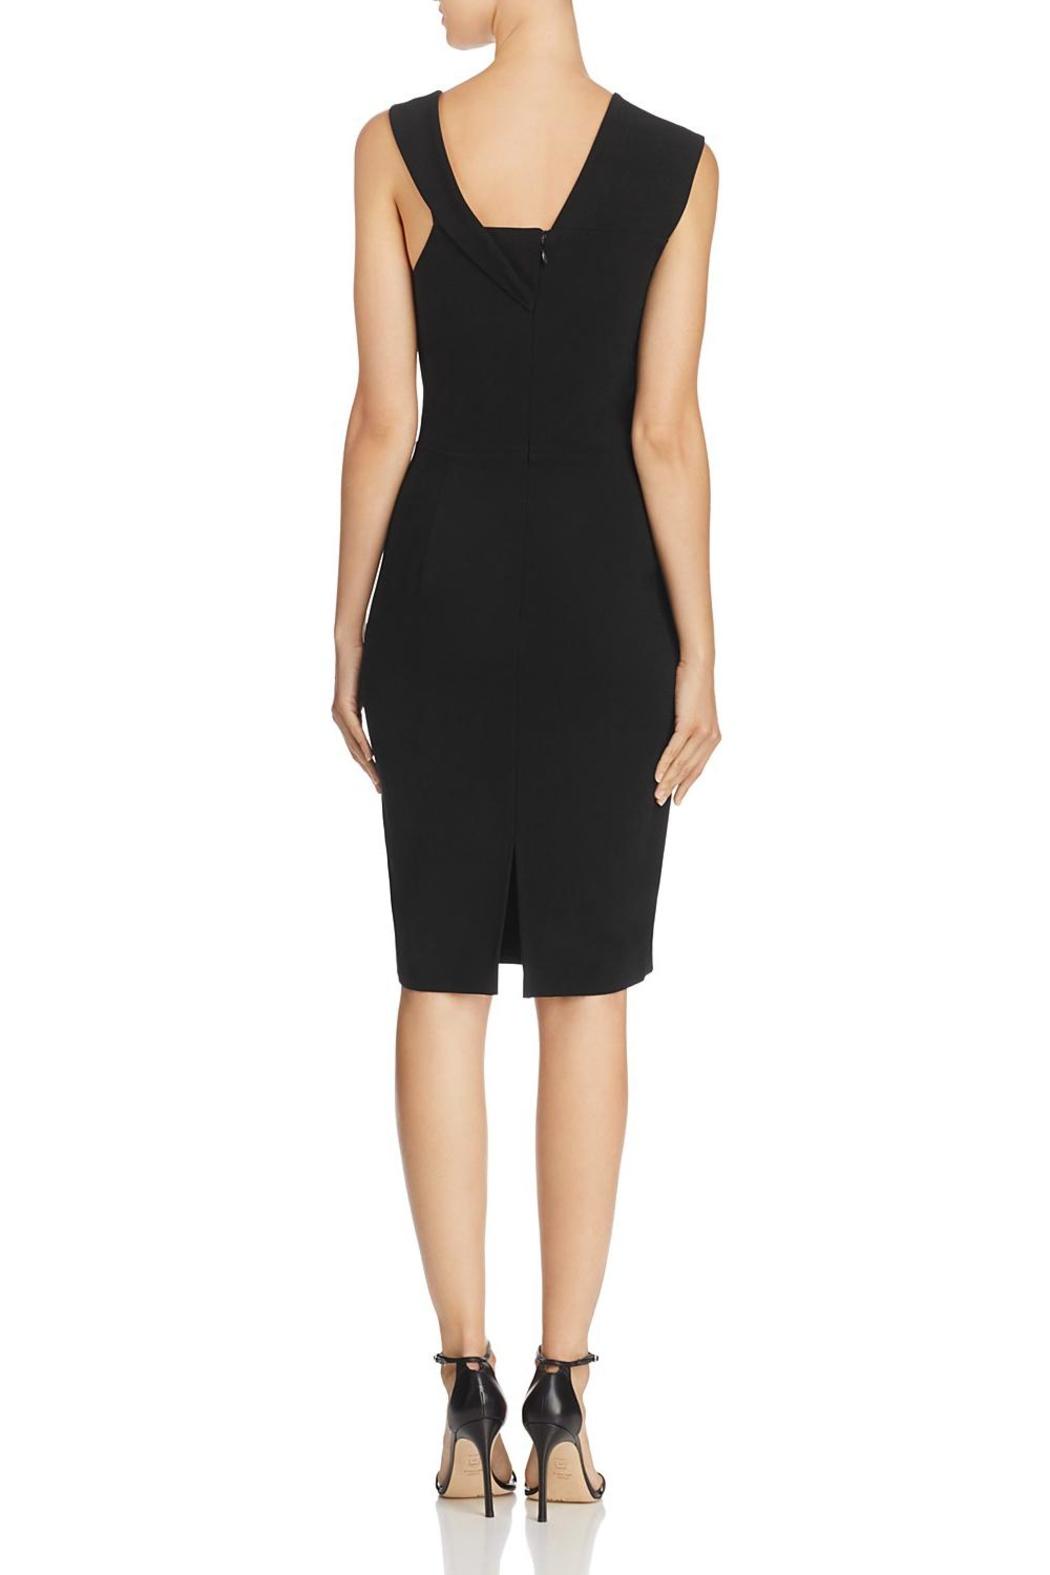 French Connection Asymmetric-Shoulder Dress - Front Full Image